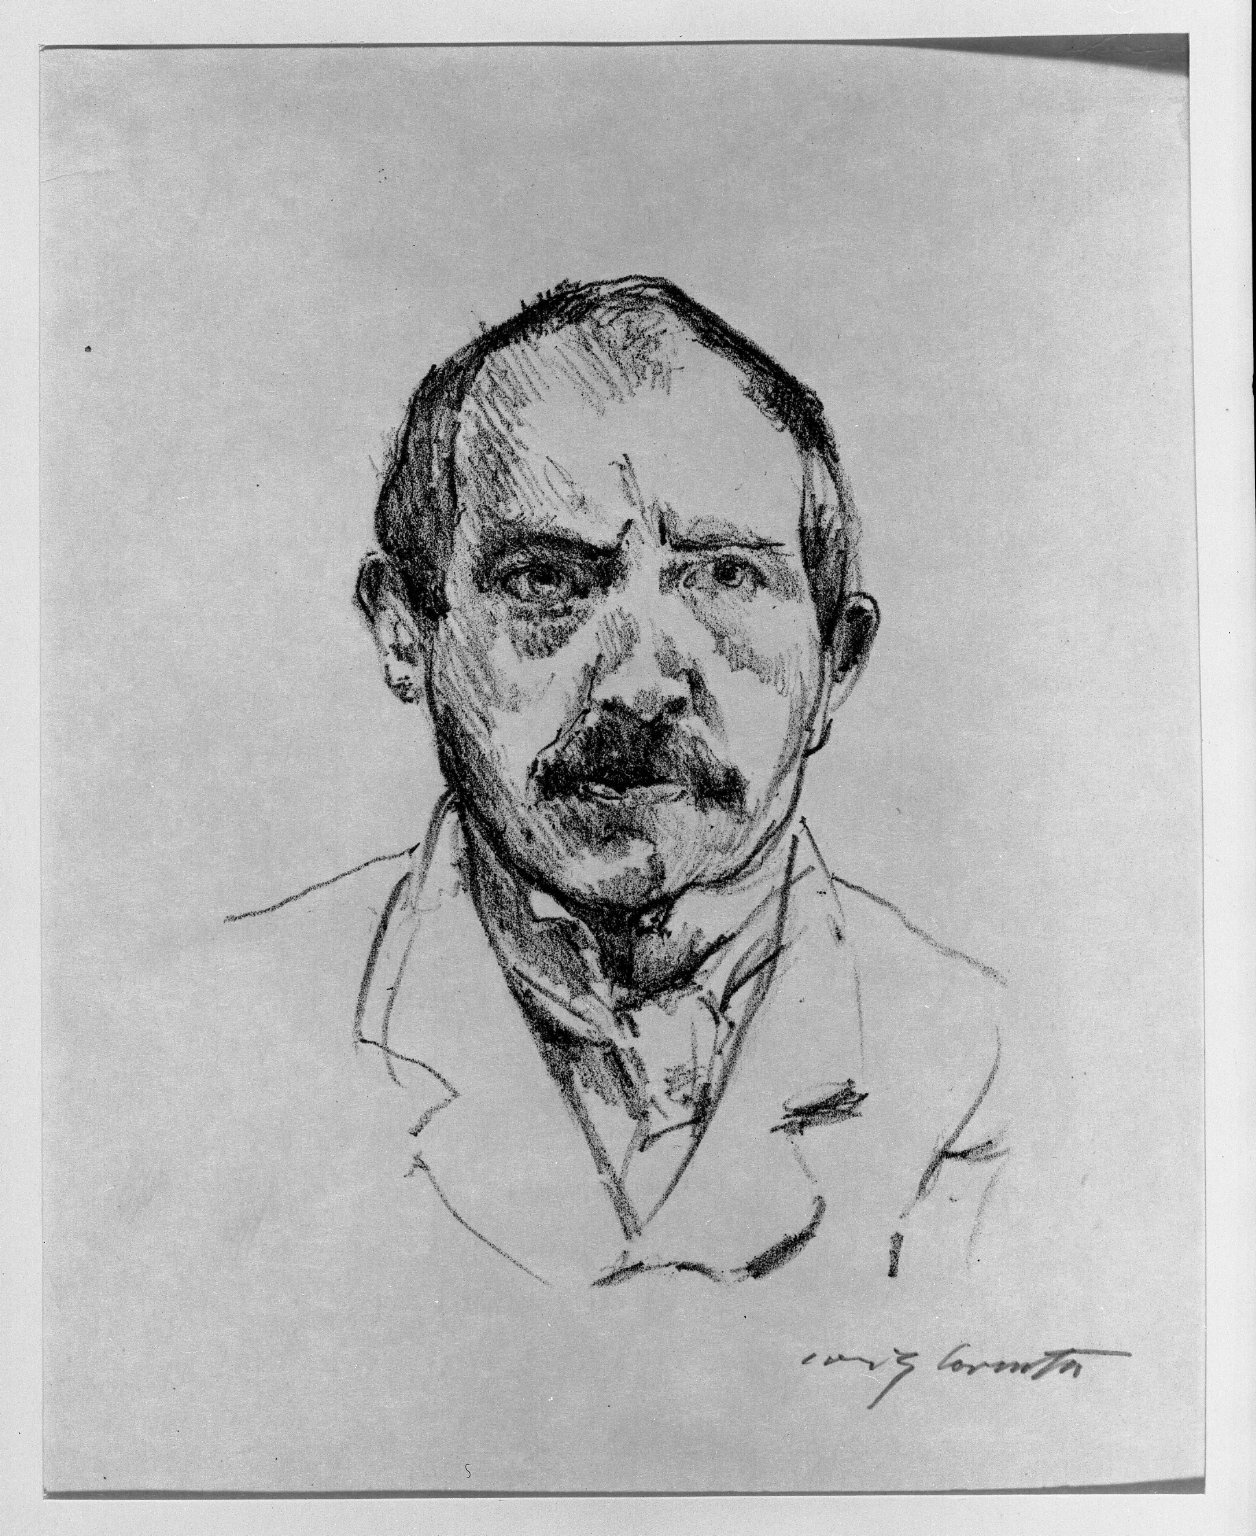 Brooklyn Museum: Self-Portrait (Selbstbildnis)